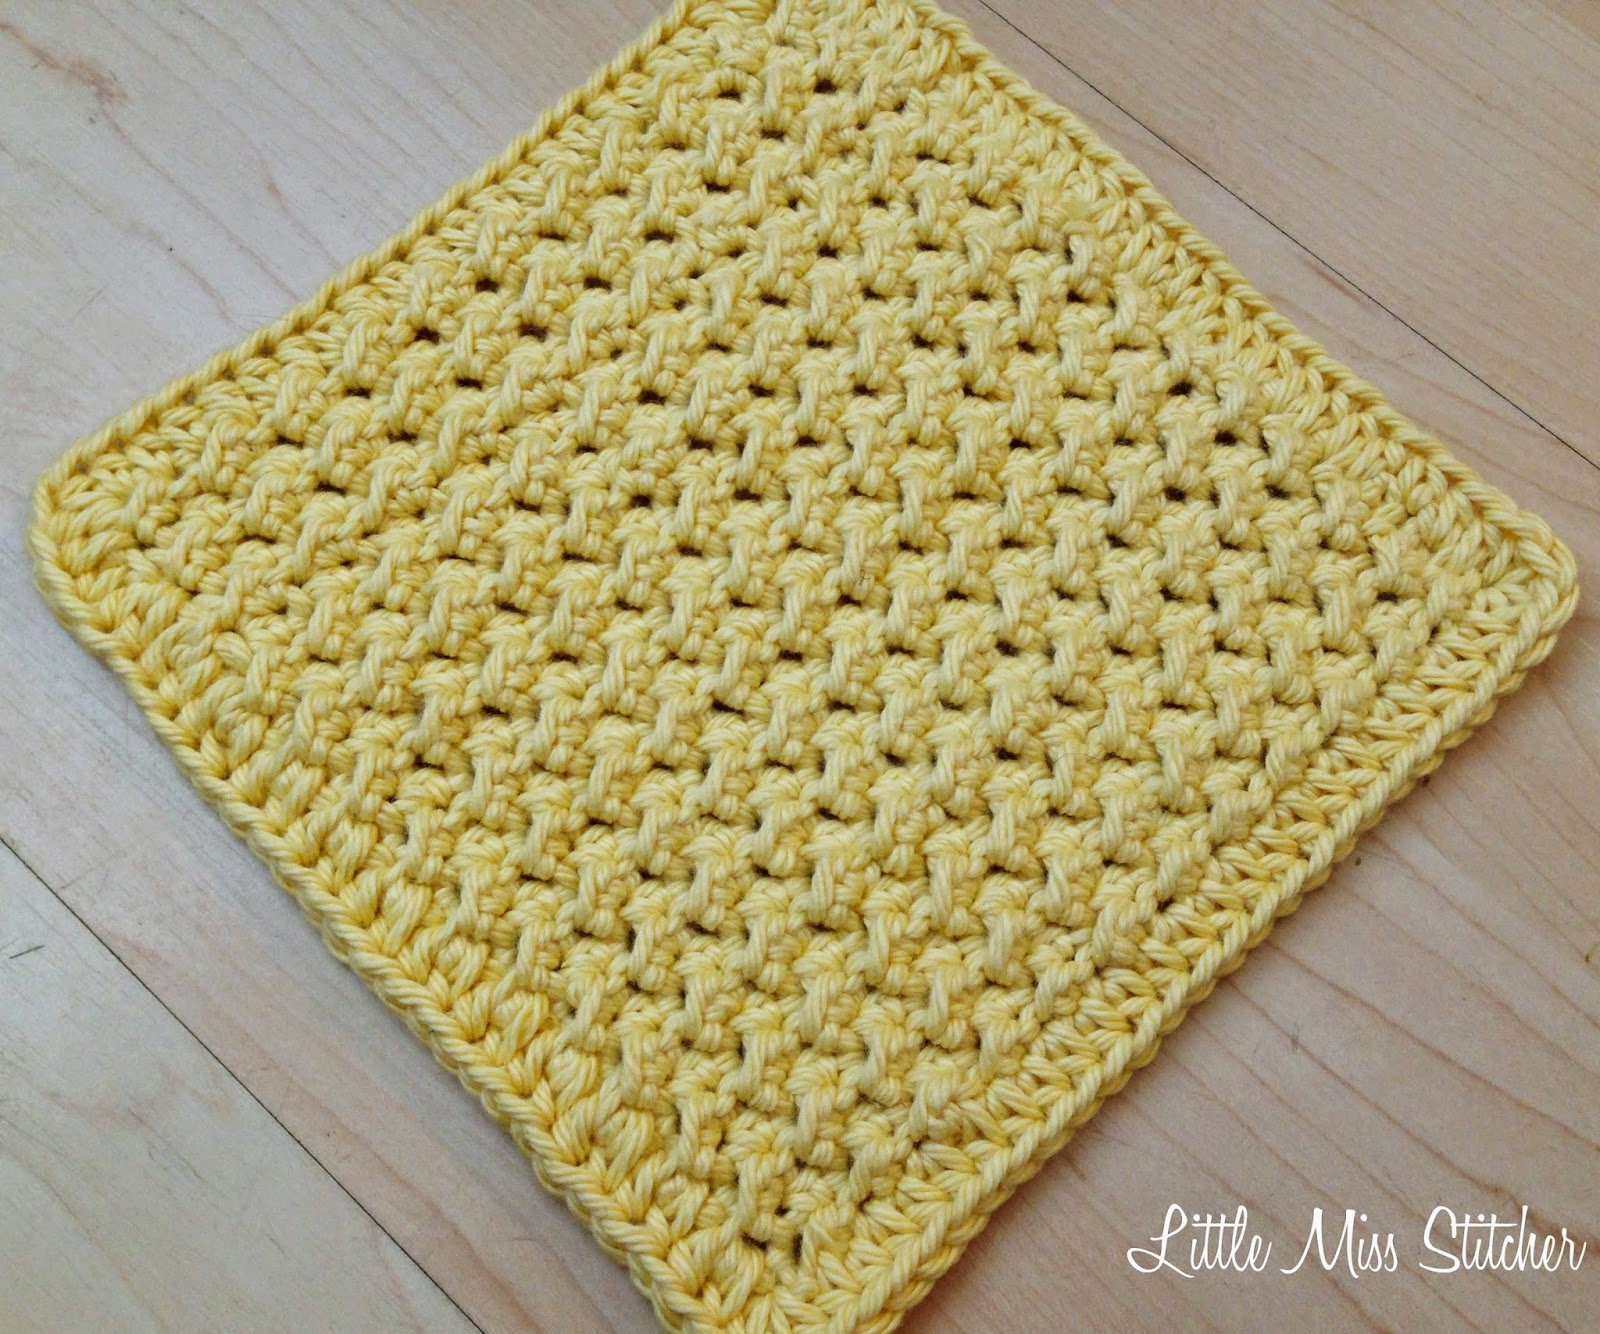 M Dishcloth Knitting Pattern : Little Miss Stitcher: 5 Free Crochet Dishcloth Patterns